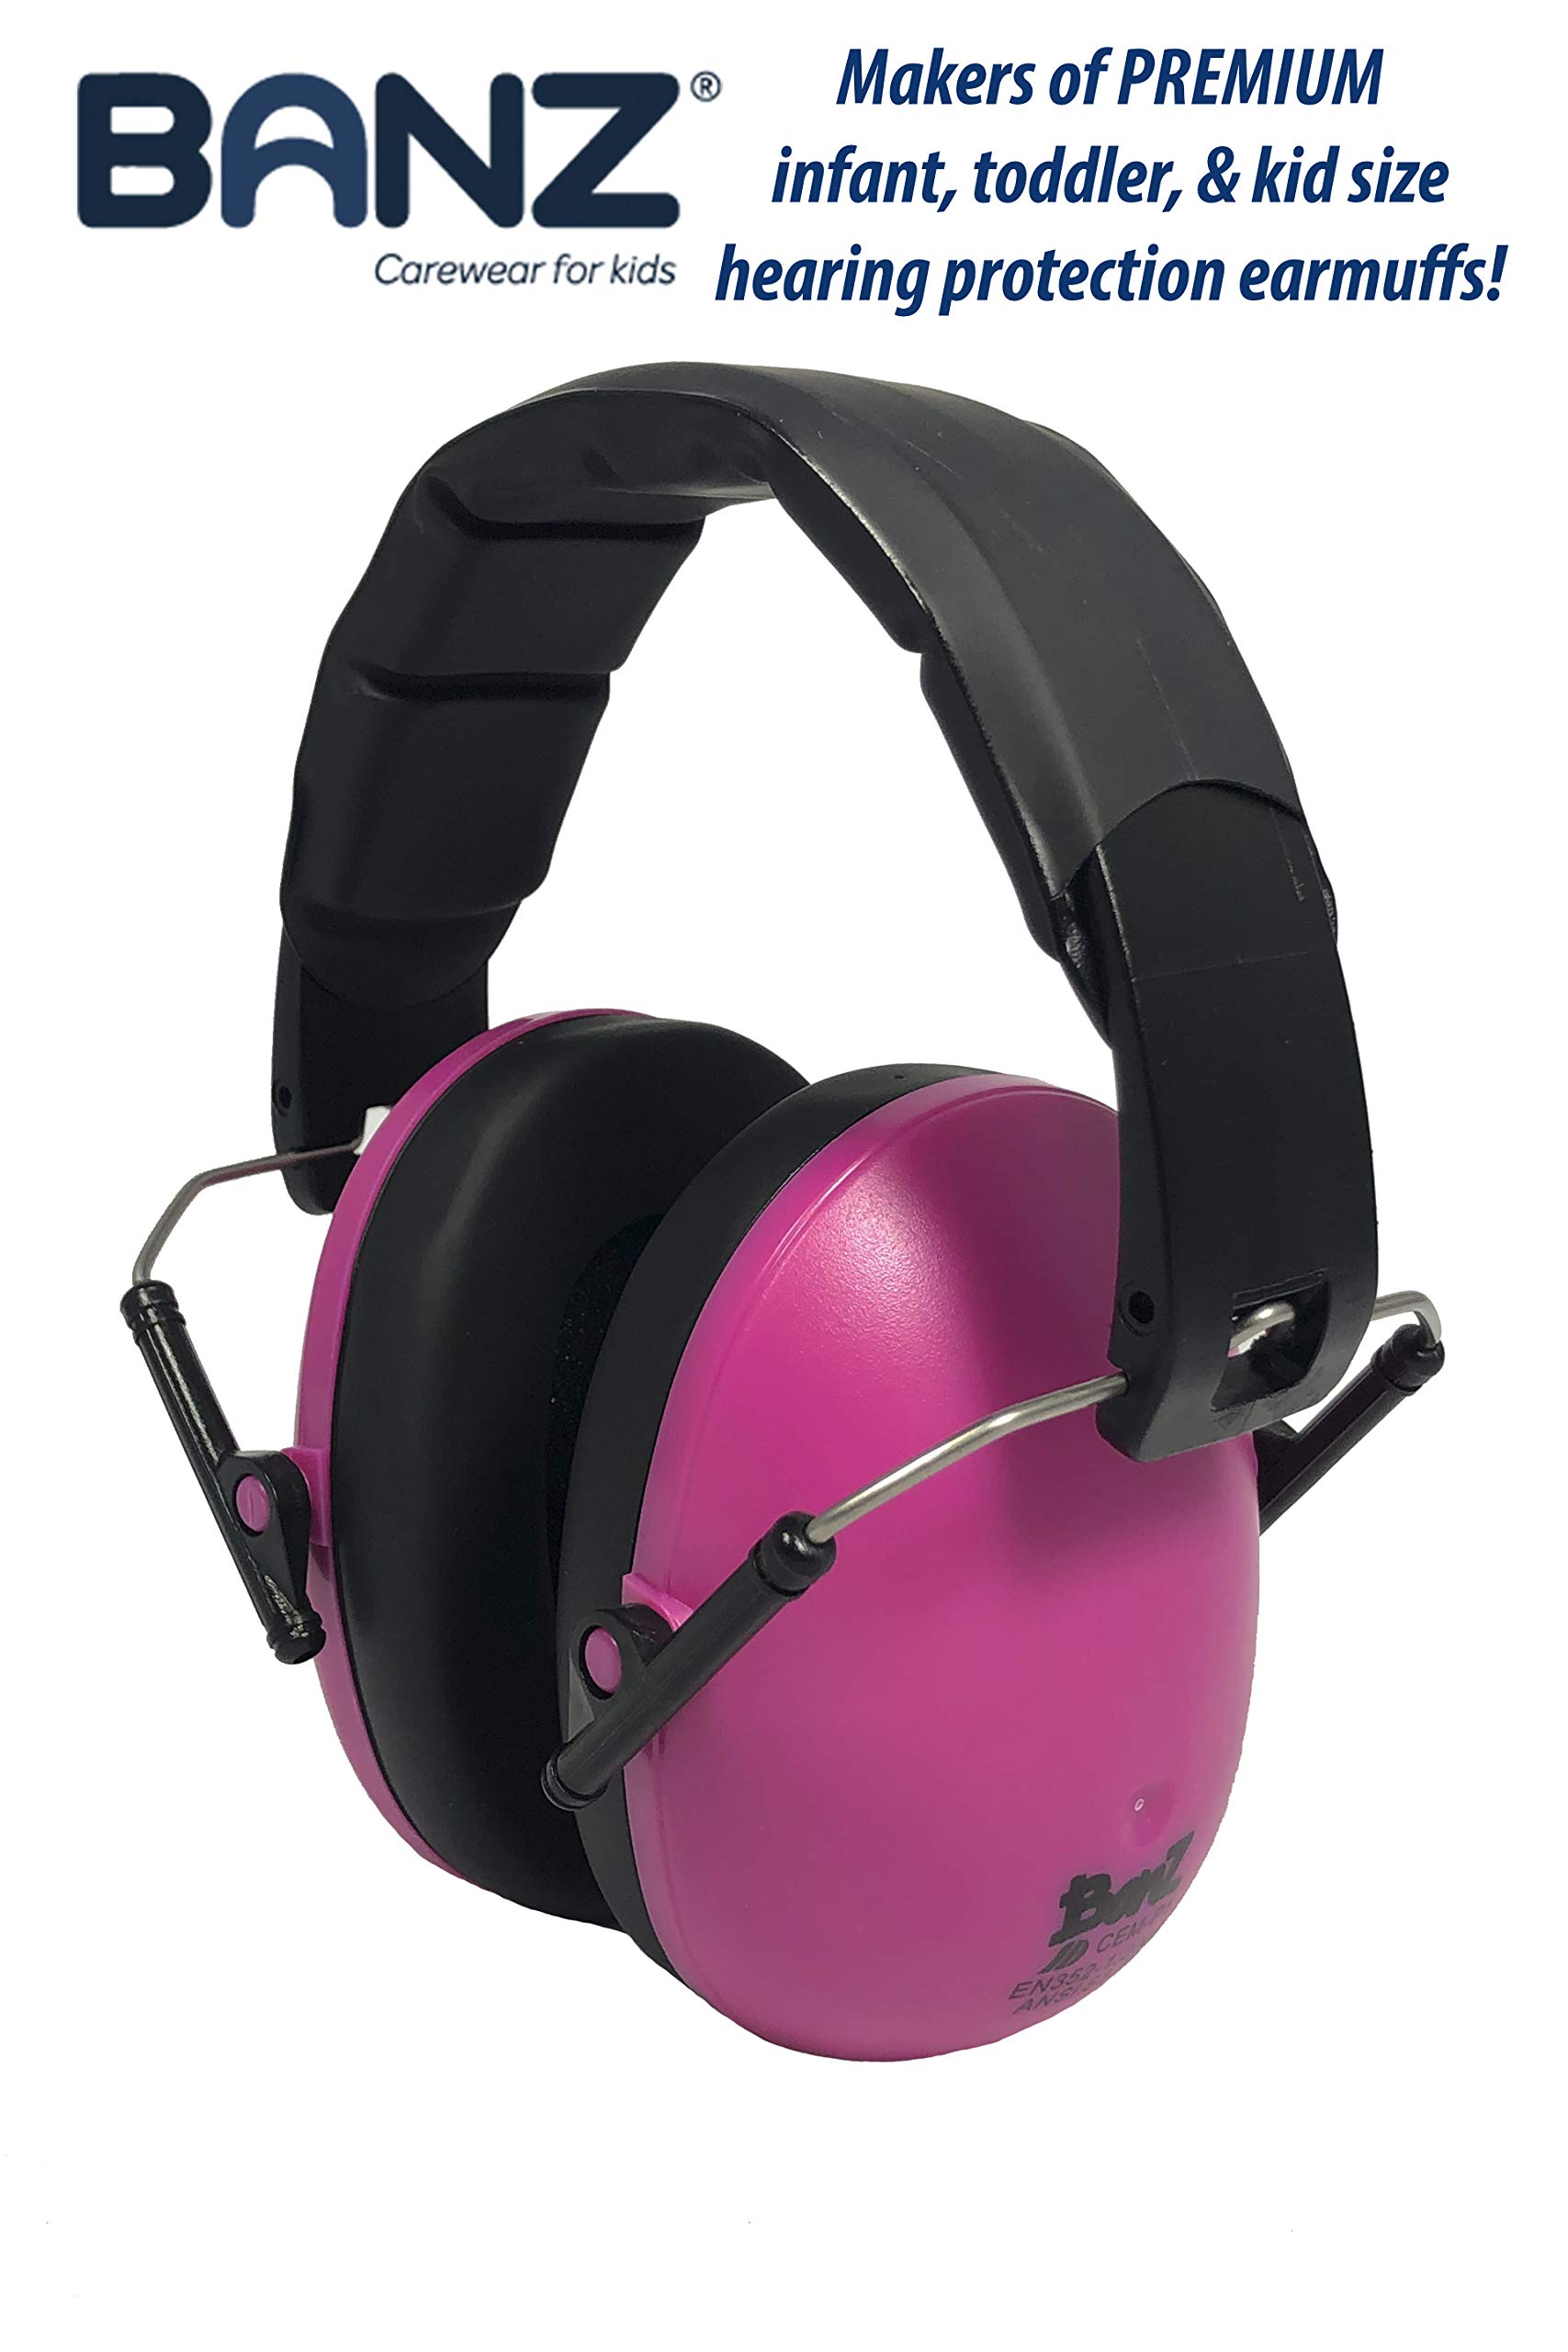 Baby Banz Earmuffs Kids Hearing Protection - Ages 2+ Years - THE BEST EARMUFFS FOR KIDS - Industry Leading Noise Reduction Rating - Soft & Comfortable - Kids Ear Protection, Magenta by BANZ (Image #2)